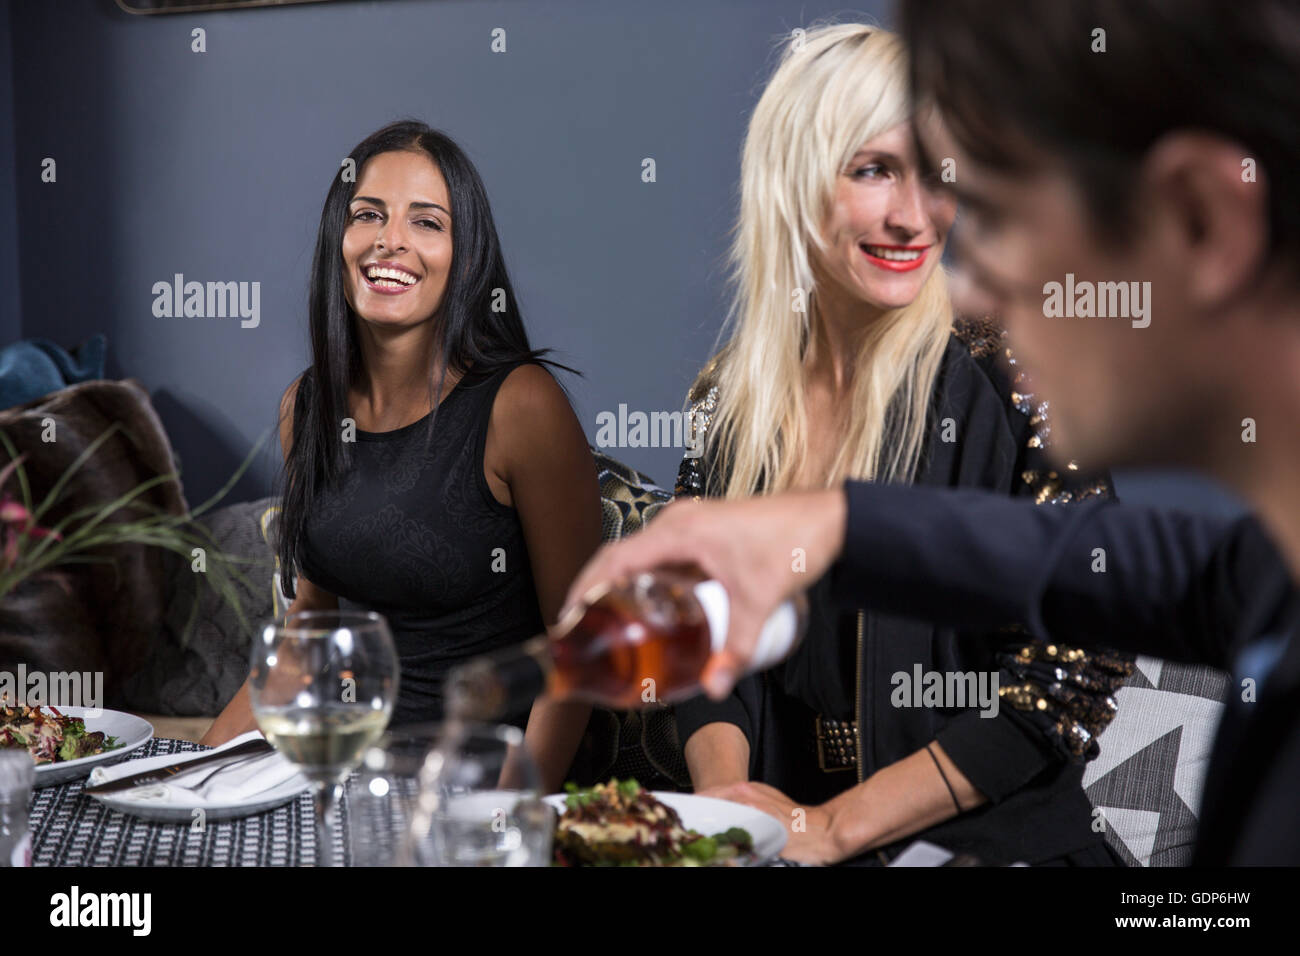 Friends dining in restaurant - Stock Image